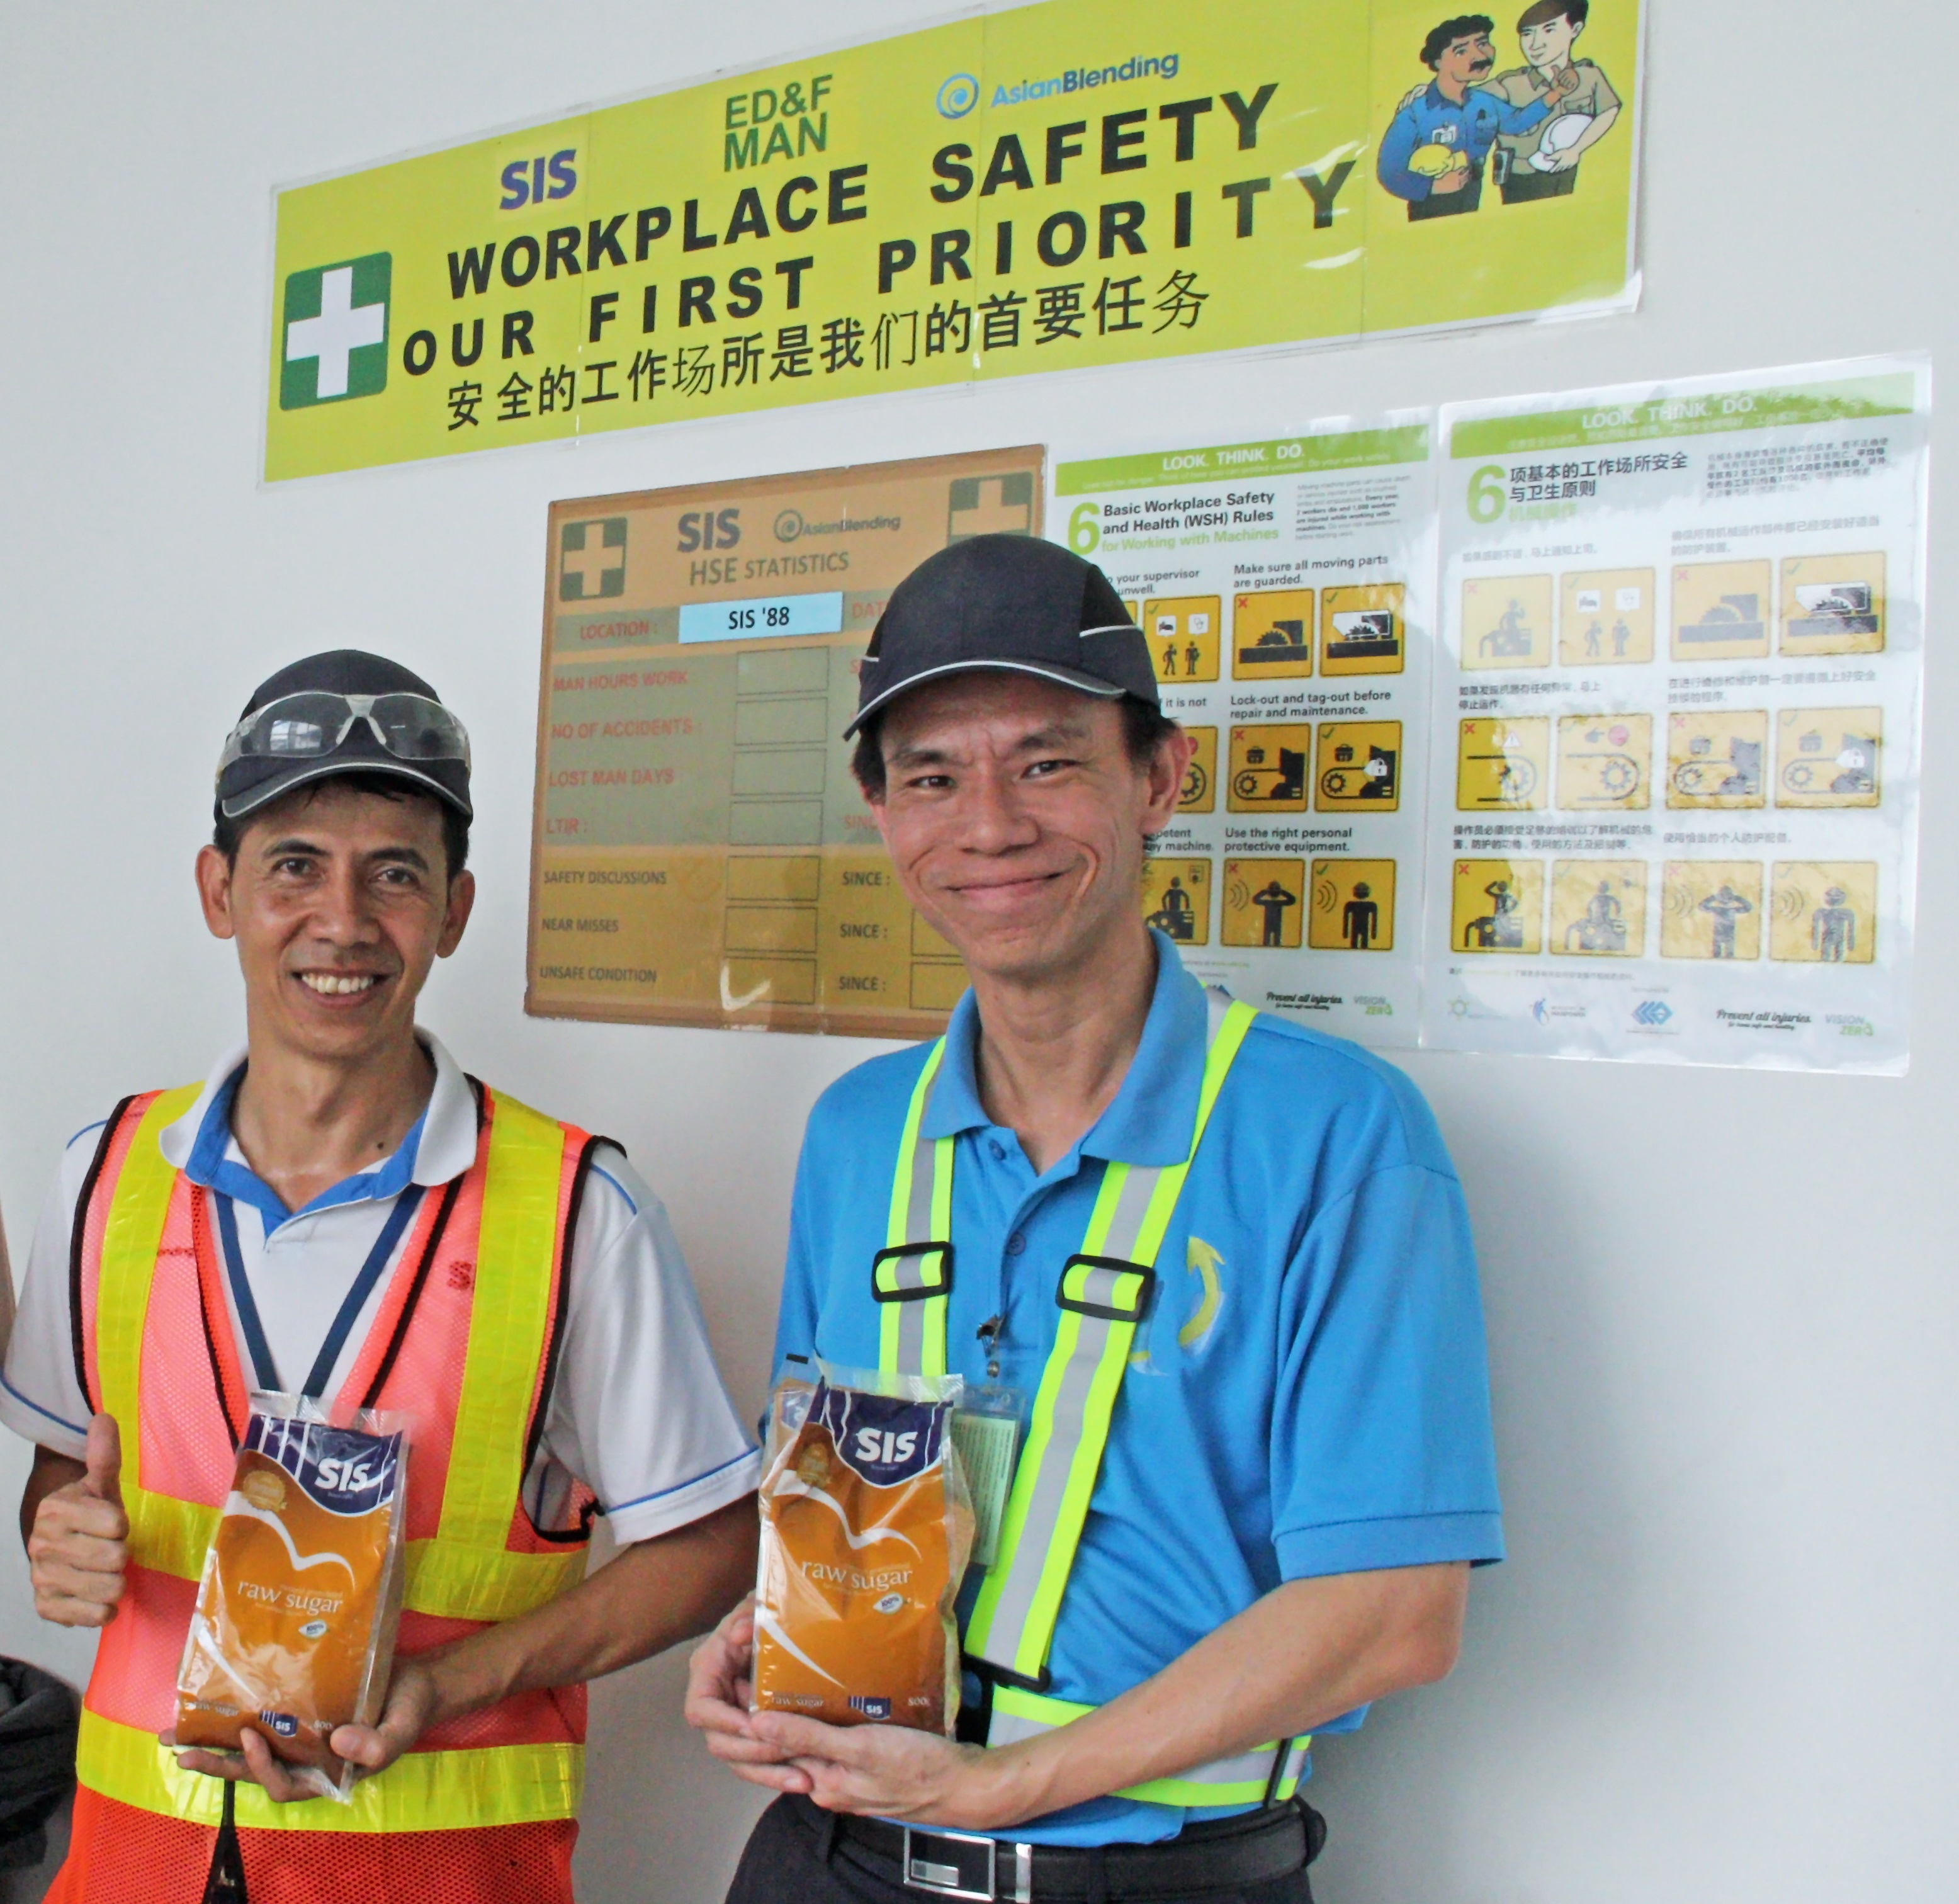 Workplace safety and health Singapore